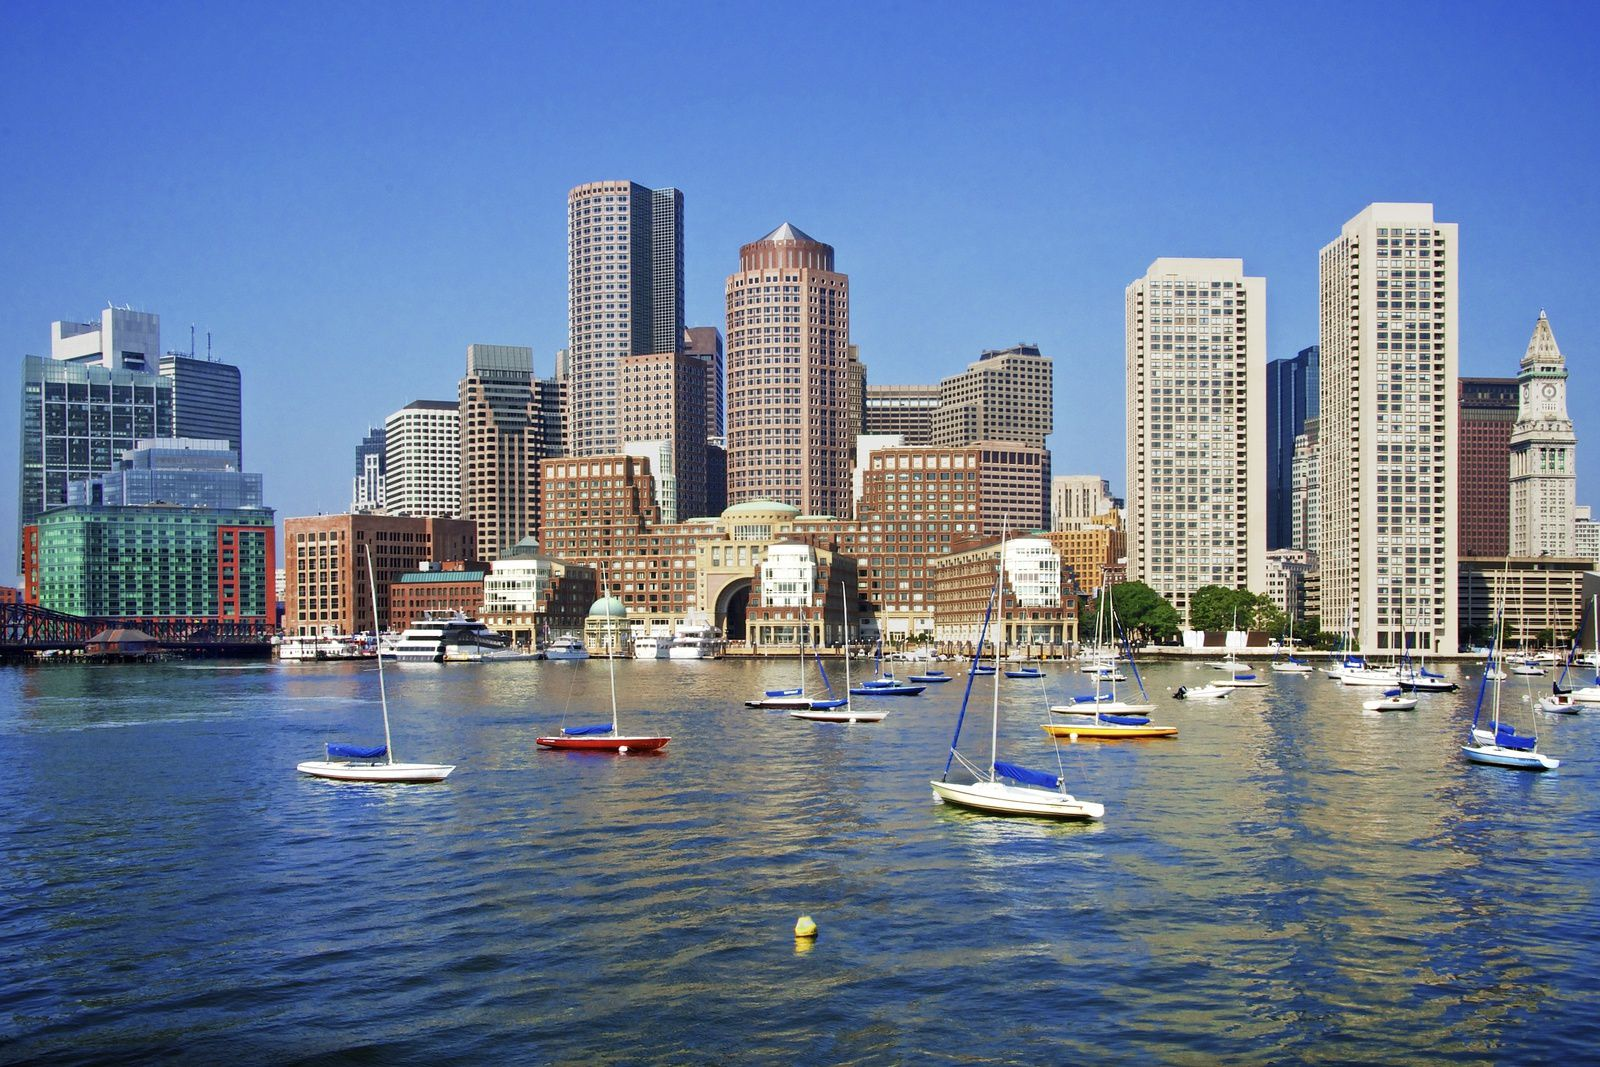 Boston - Via: theodysseyonline.com